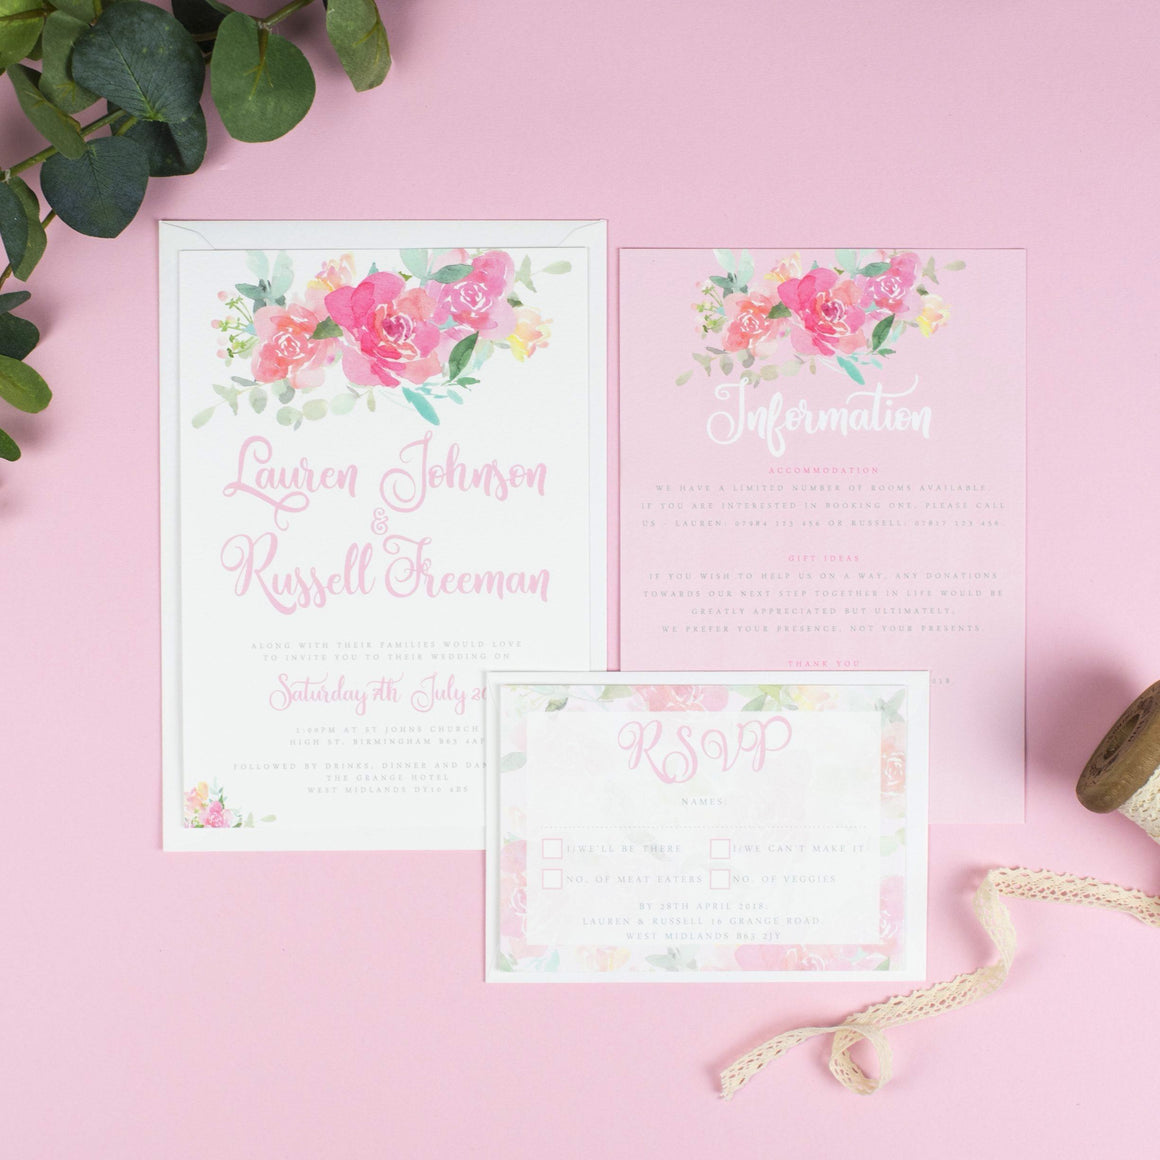 A5 Wedding Invitation - Blossom Watercolour Flowers Wedding Invitations